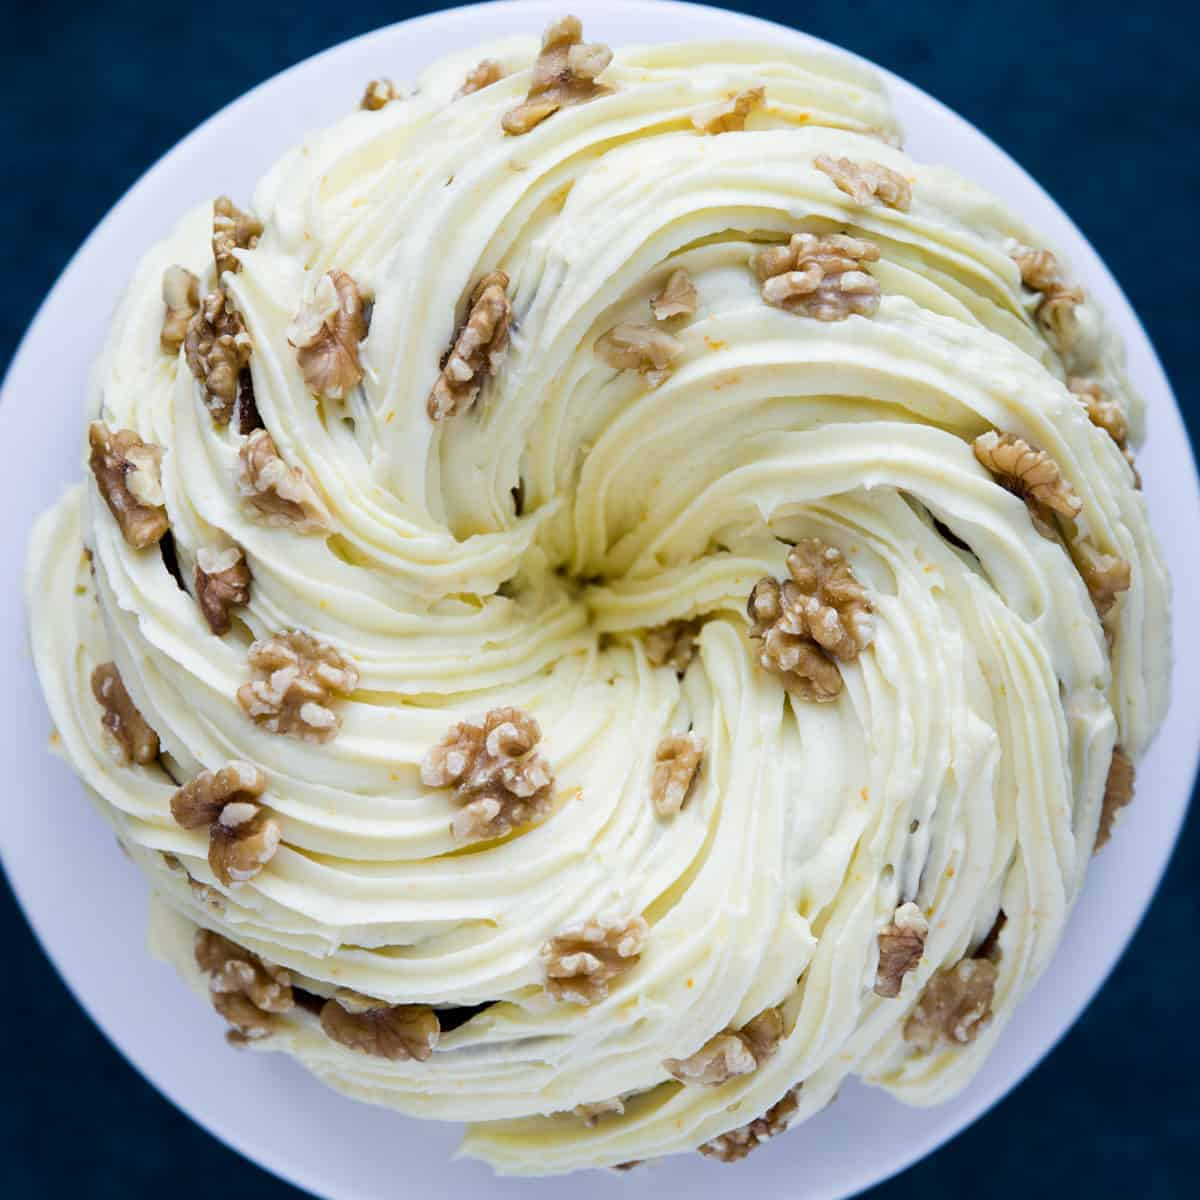 A carrot cake bundt that has been covered in a cream cheese frosting with walnuts.